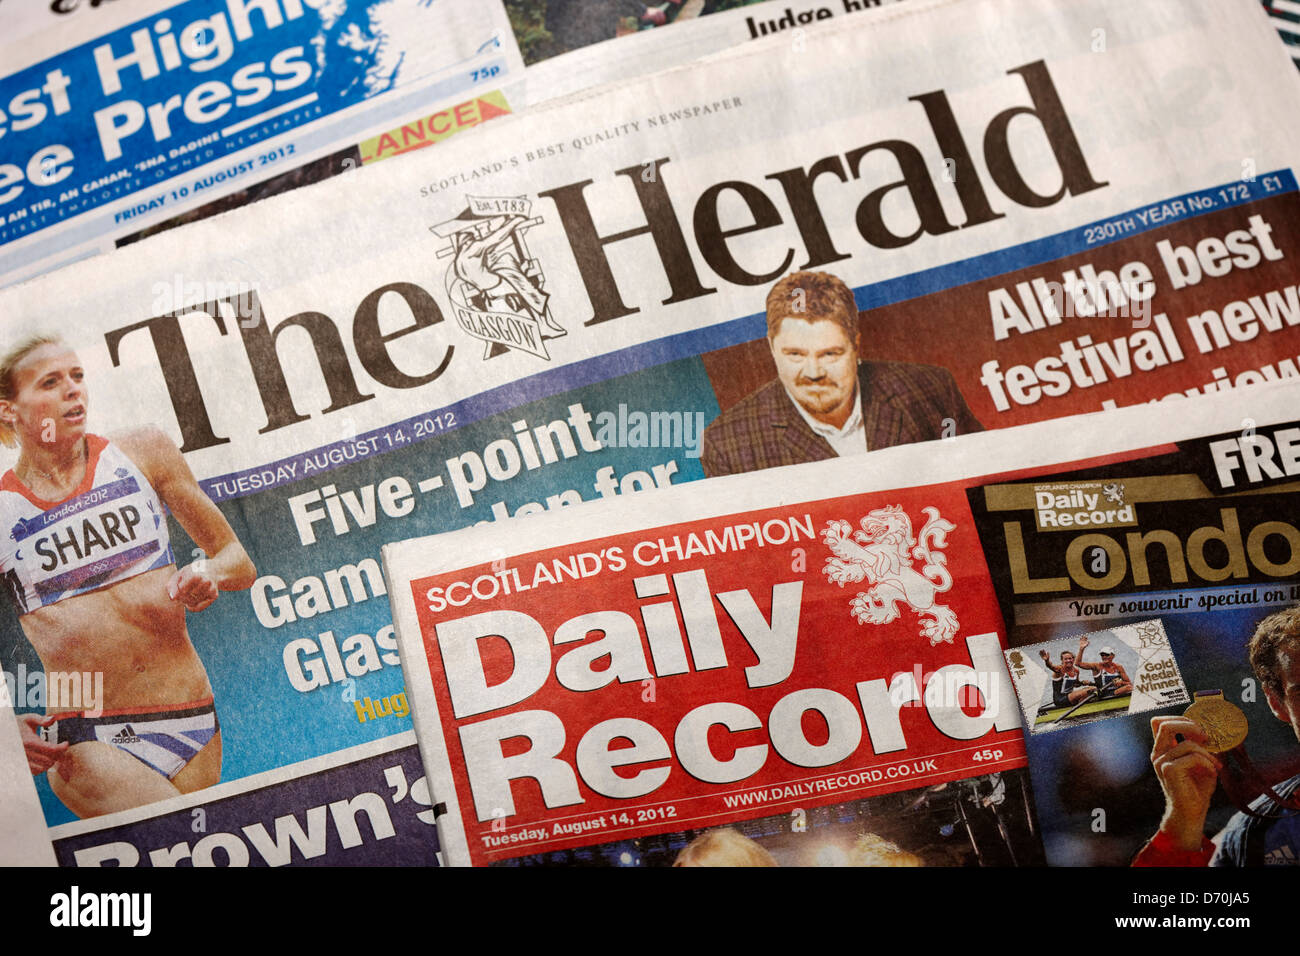 scottish daily newspapers the herald and daily record Stock Photo